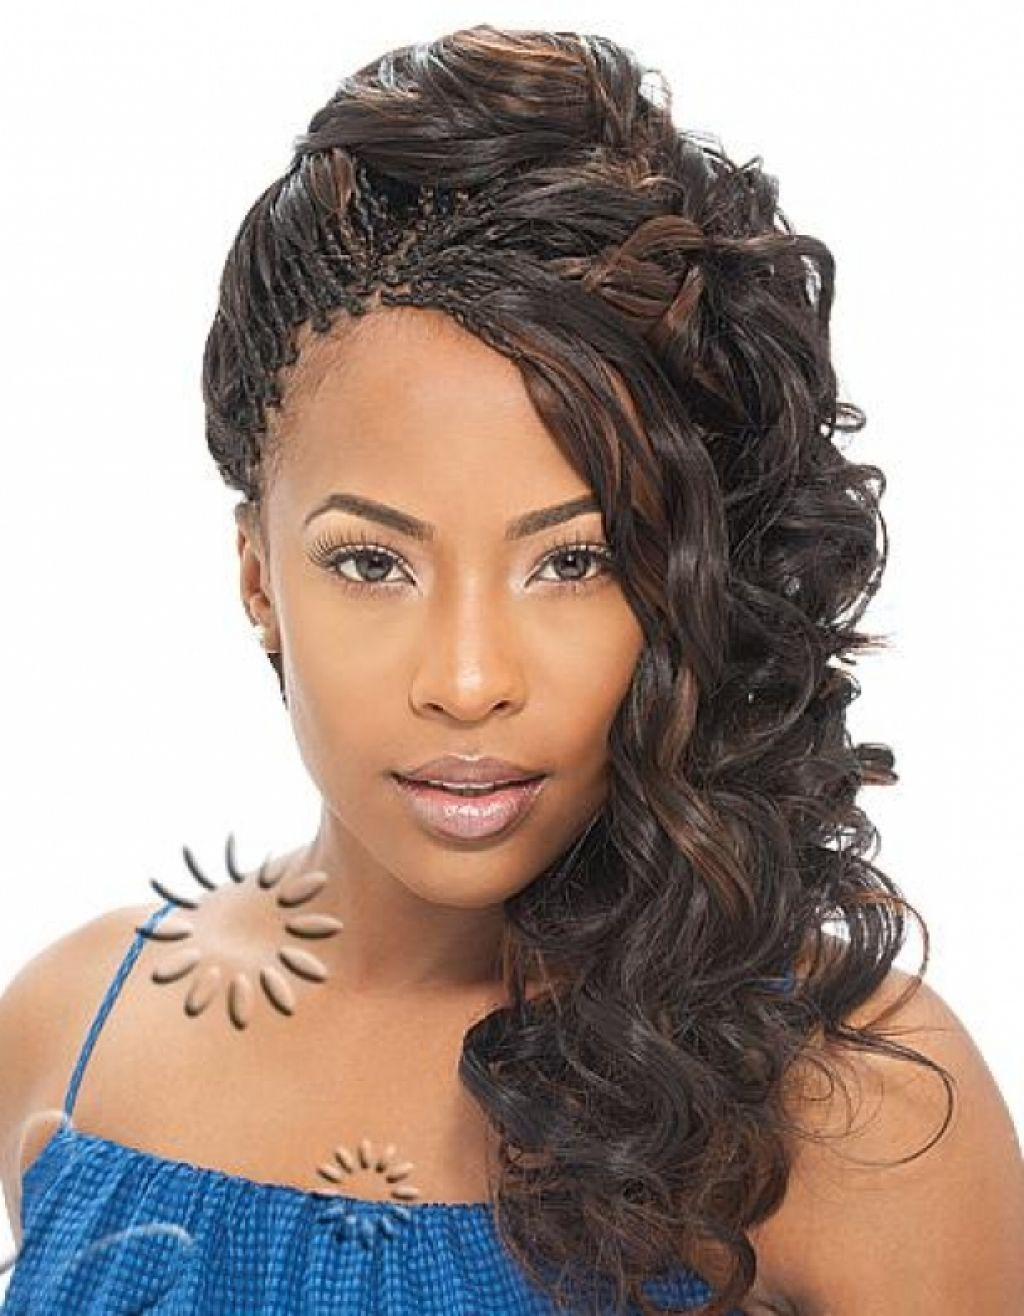 African American Braided Hairstyles Alluring Cute Twist Braided Hairstyles For African American  Cute Braided